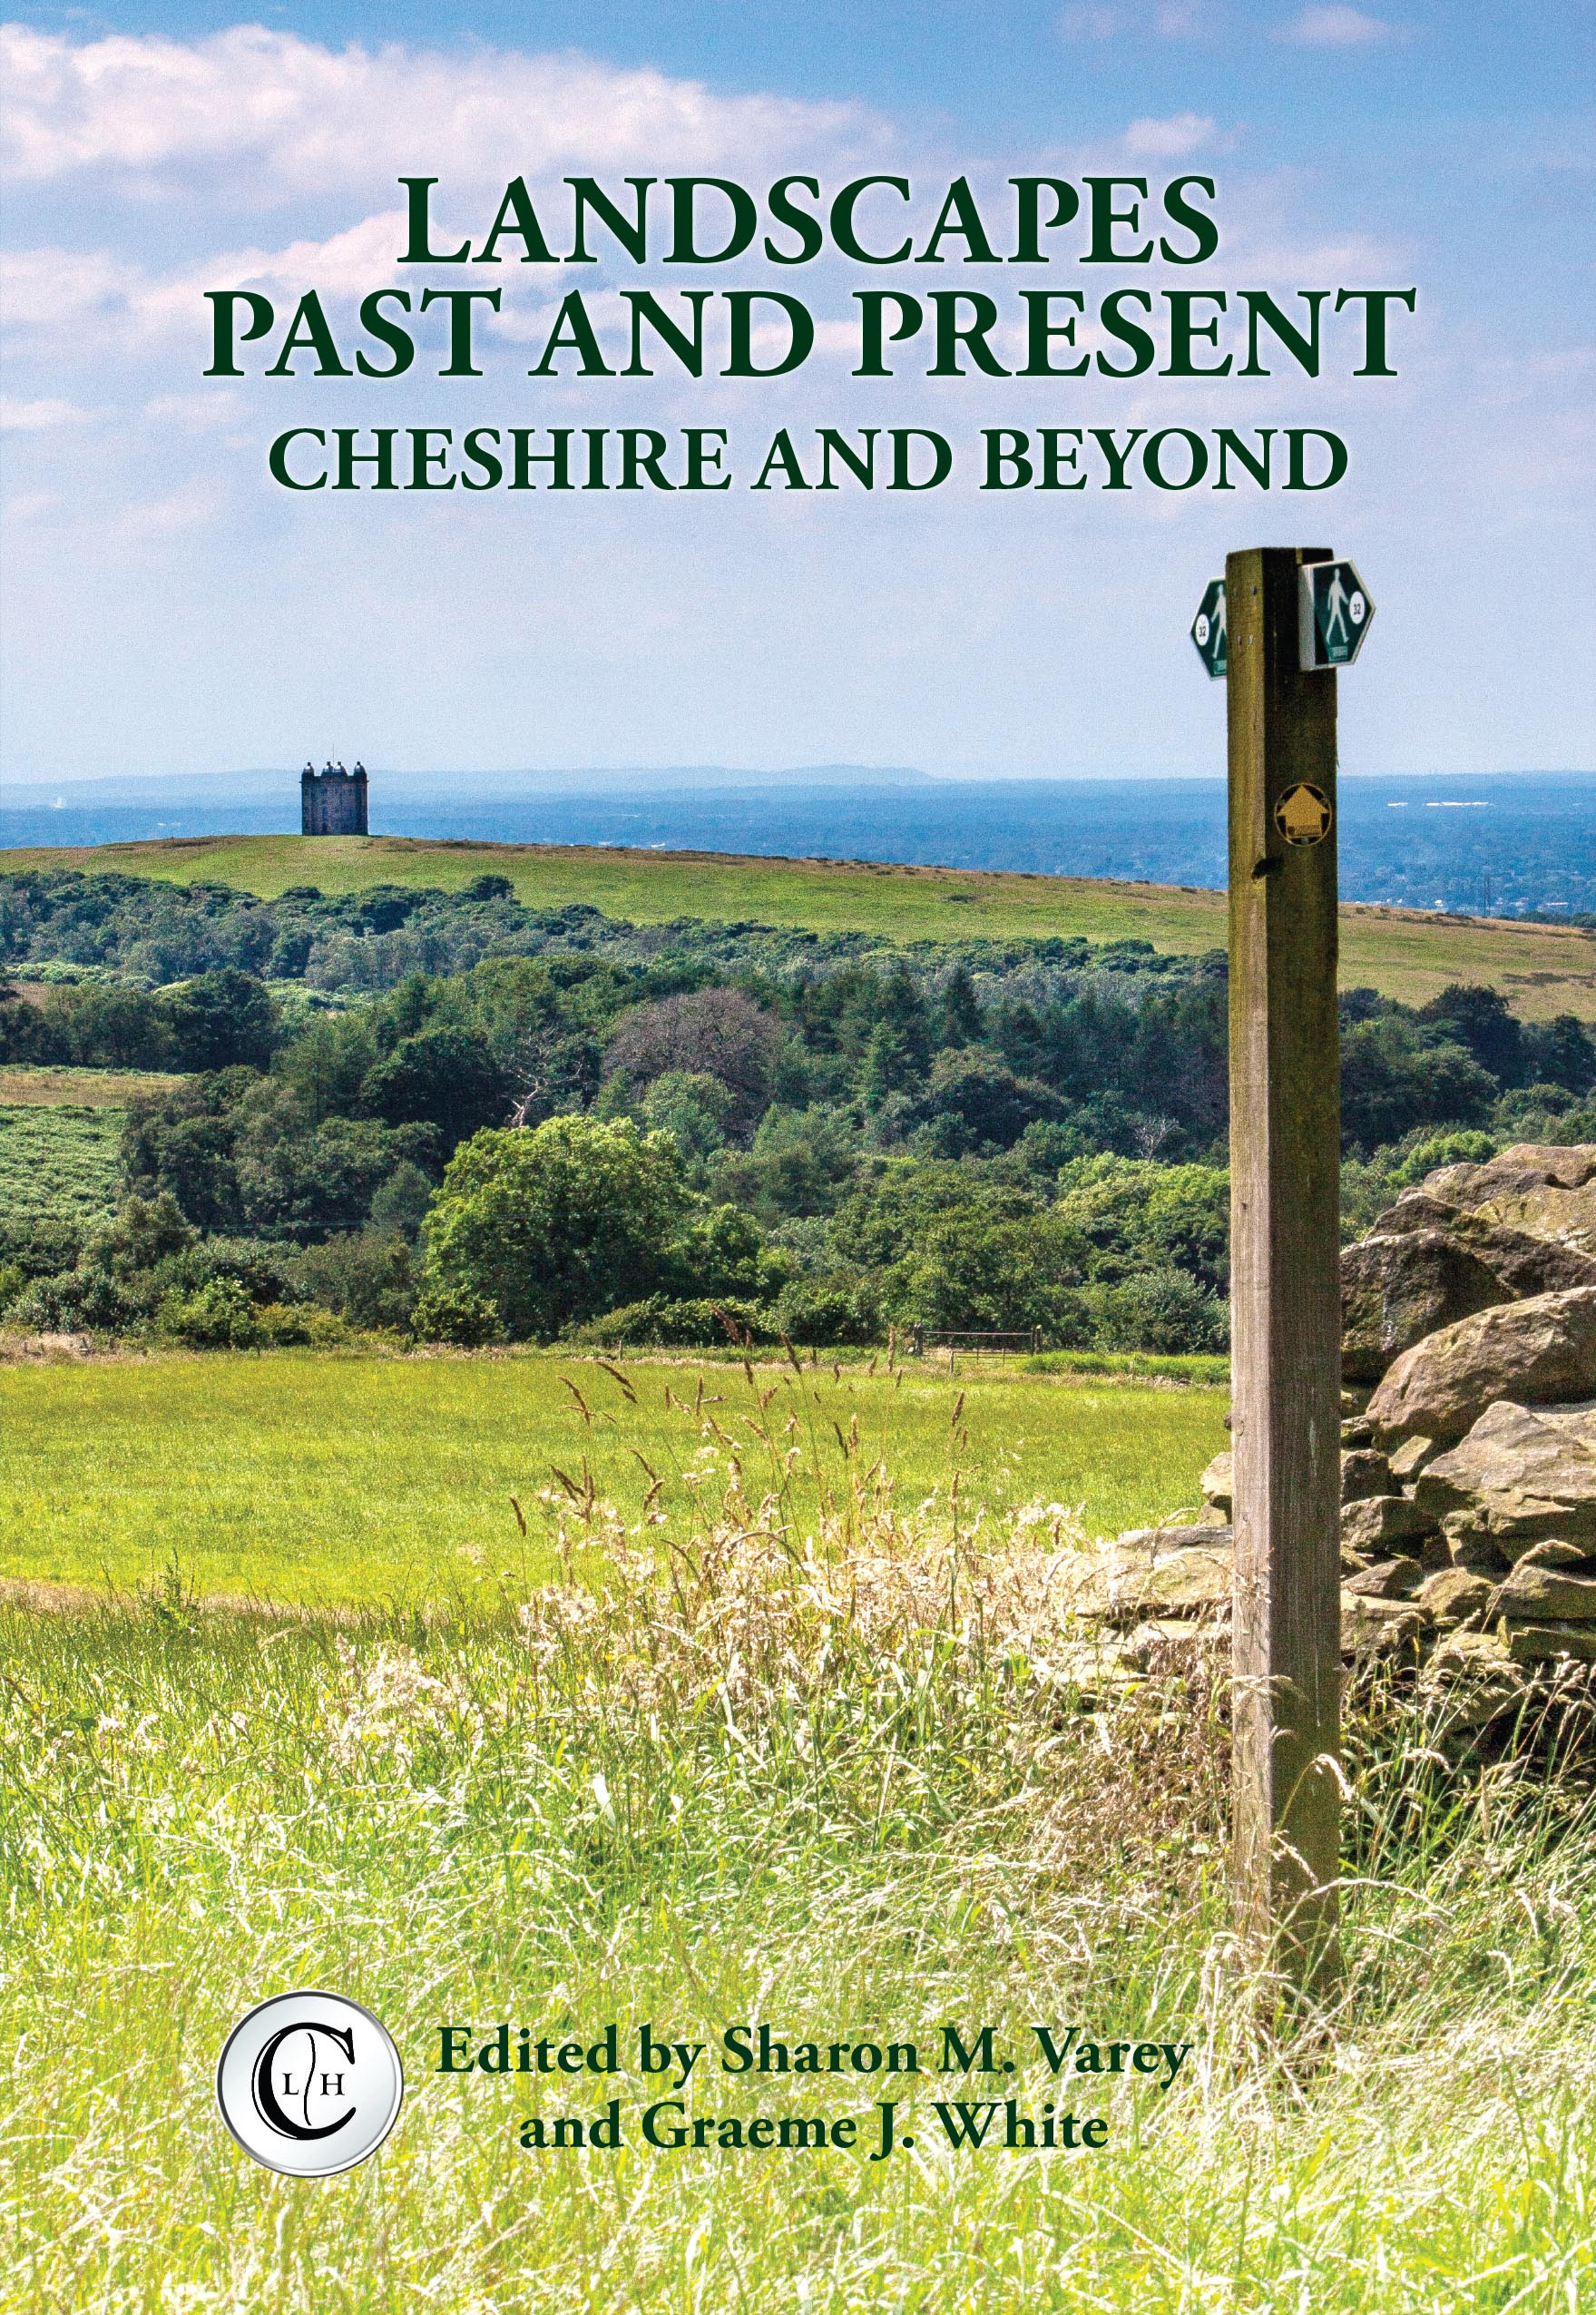 Landscapes Past and Present Cheshire and Beyond